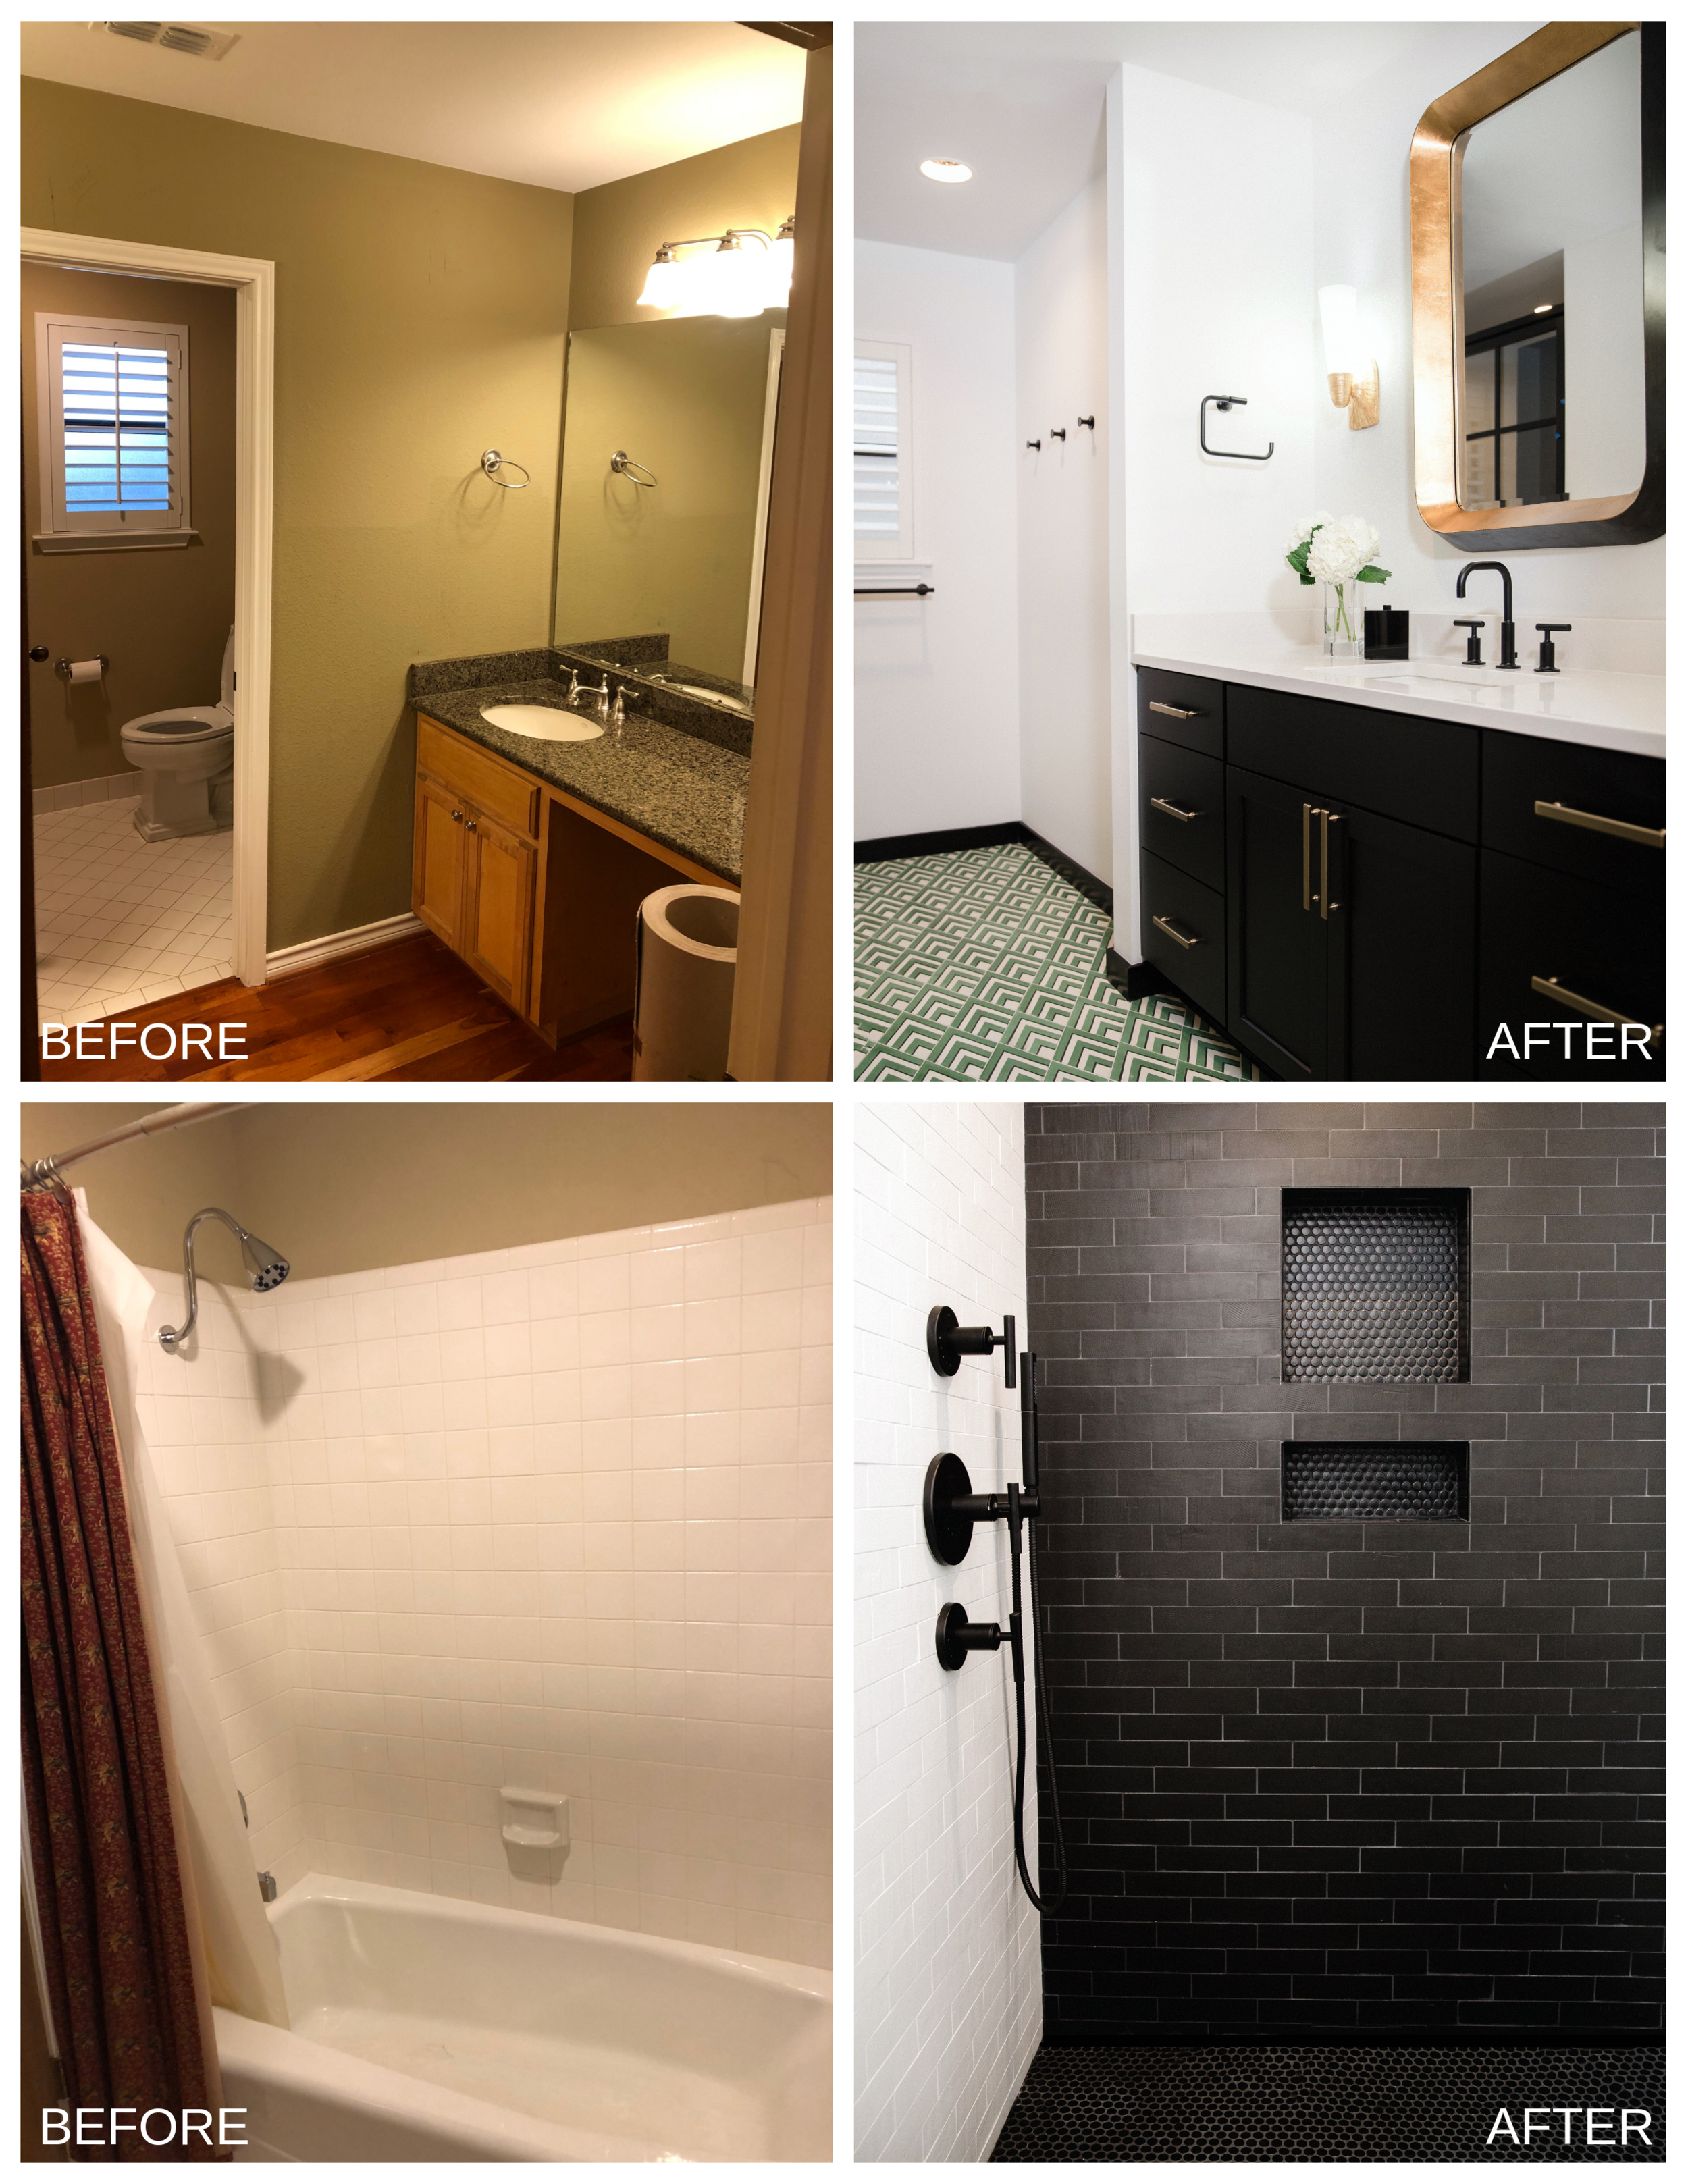 TOP ROW B & A: The current vanity plumbing was moved to accommodate the new sink and faucet location. Afterward, the new sink and faucet were installed. BOTTOM ROW B & A: We then moved the shower plumbing to the new wall and began the installation for the shower fixture and trim pieces. A new shower pan with curb was built into place. Fabrication and installation of hardiboard and waterproofing were set for tiling. Framing with schulter edging was done for the shower niche. New tiling was also laid for the shower floor and shower walls up to the ceiling.